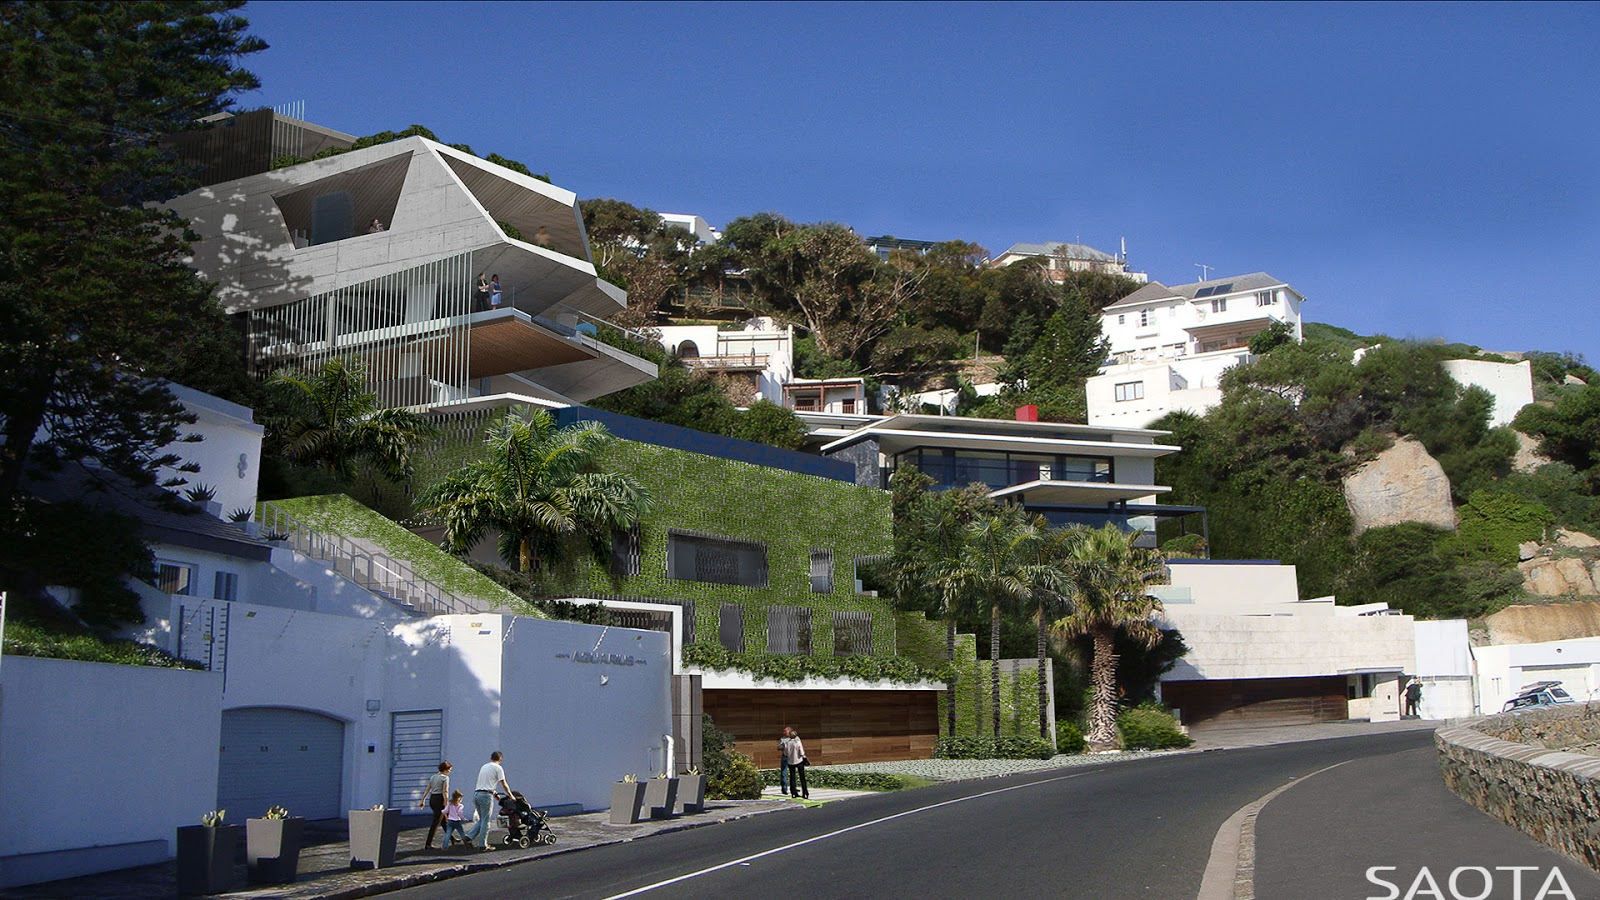 Victoria 40 Cape Town, South Africa By Saota